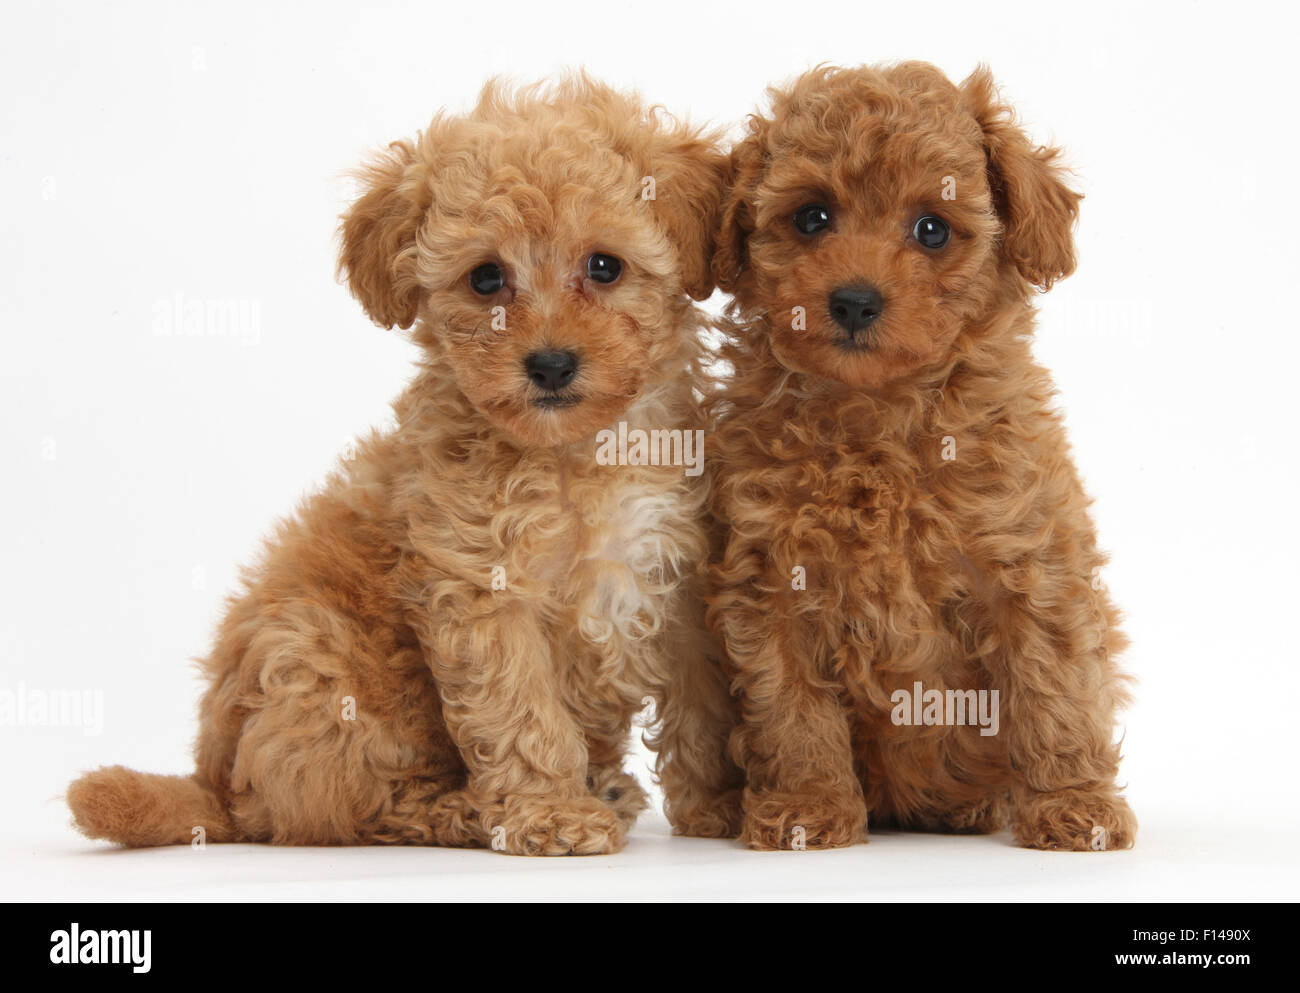 Two cute red Toy Poodle puppies, against white background